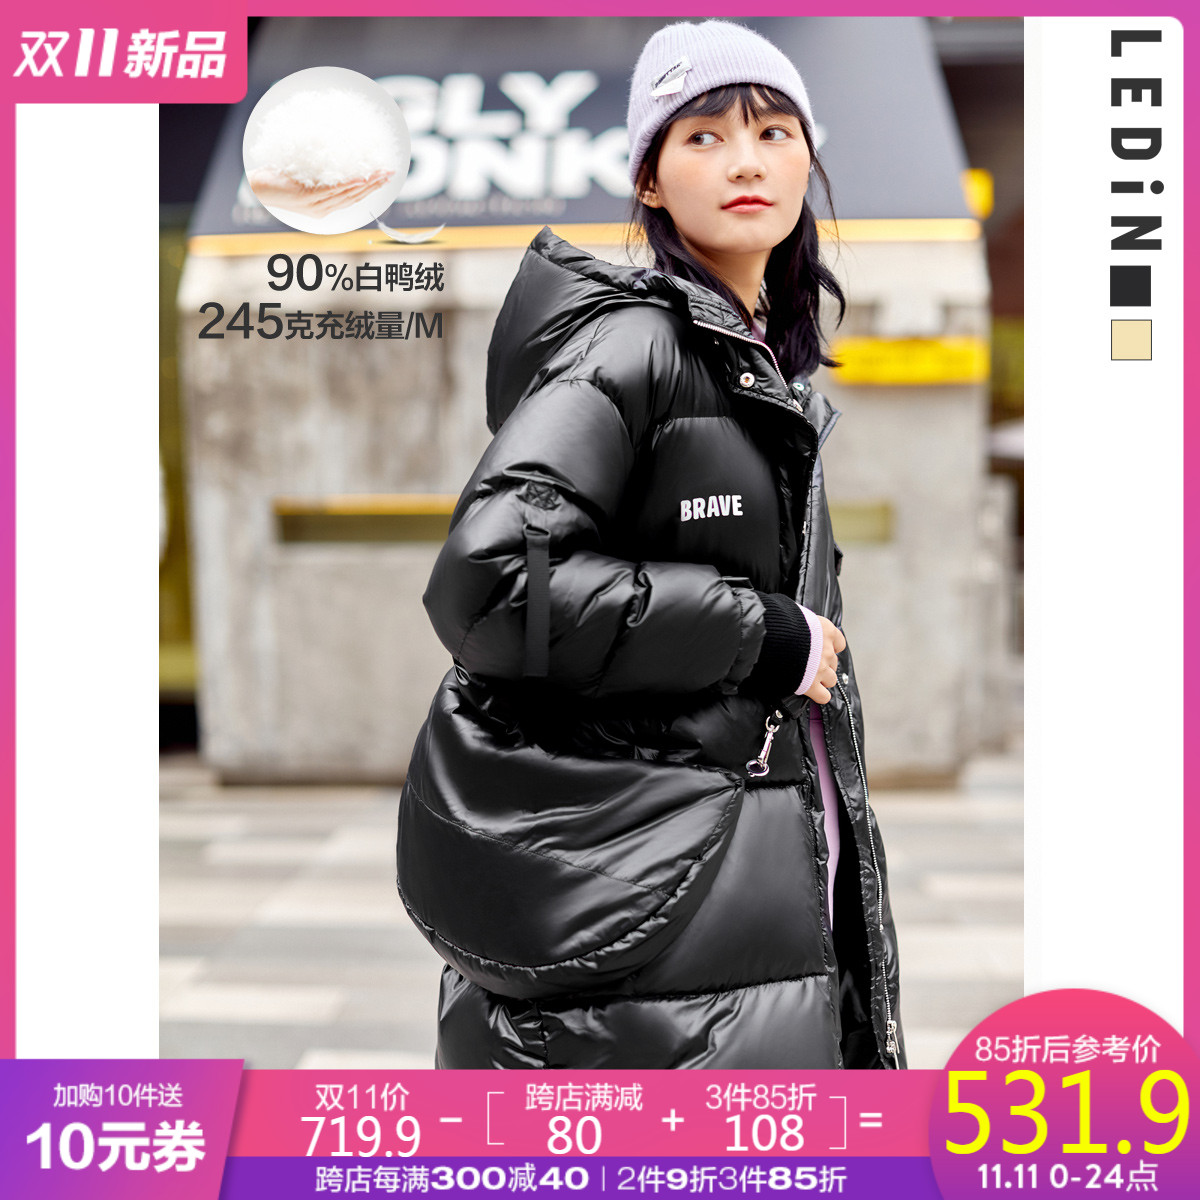 (New product) LeYu 2020 autumn new wave small students bright face with bag medium long version down jacket